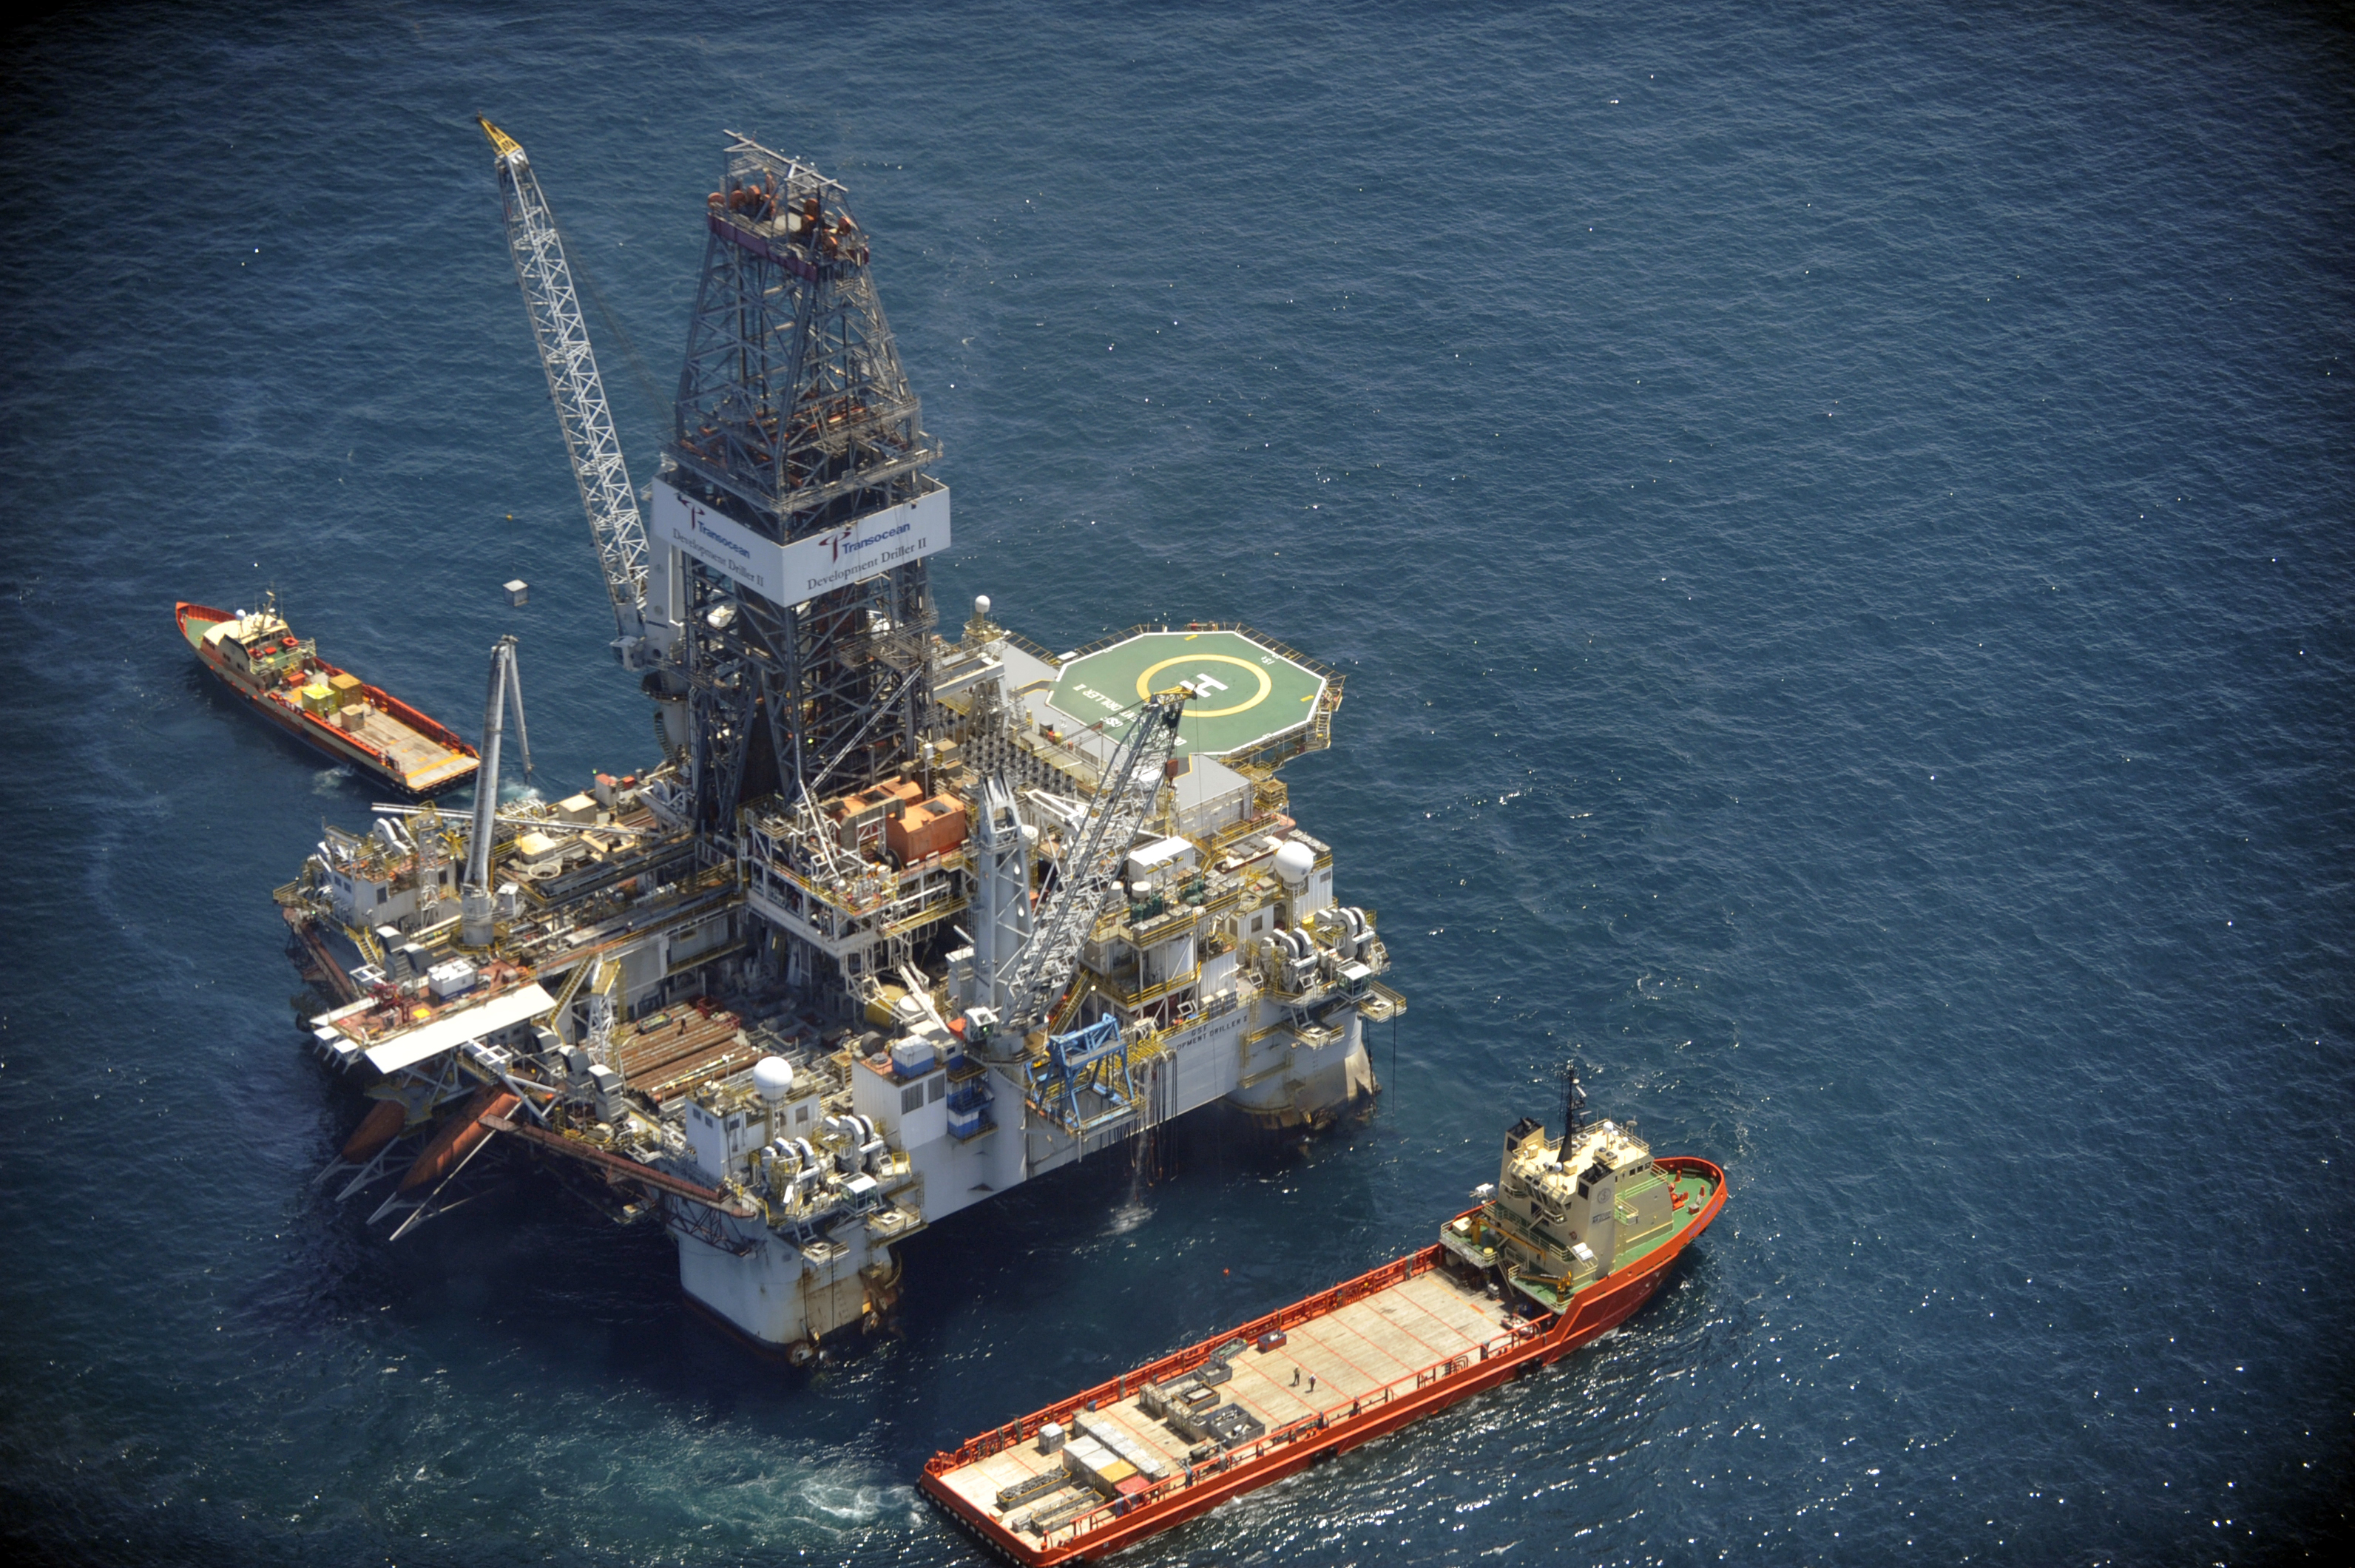 Offshore Oil and Gas | American Geosciences Institute